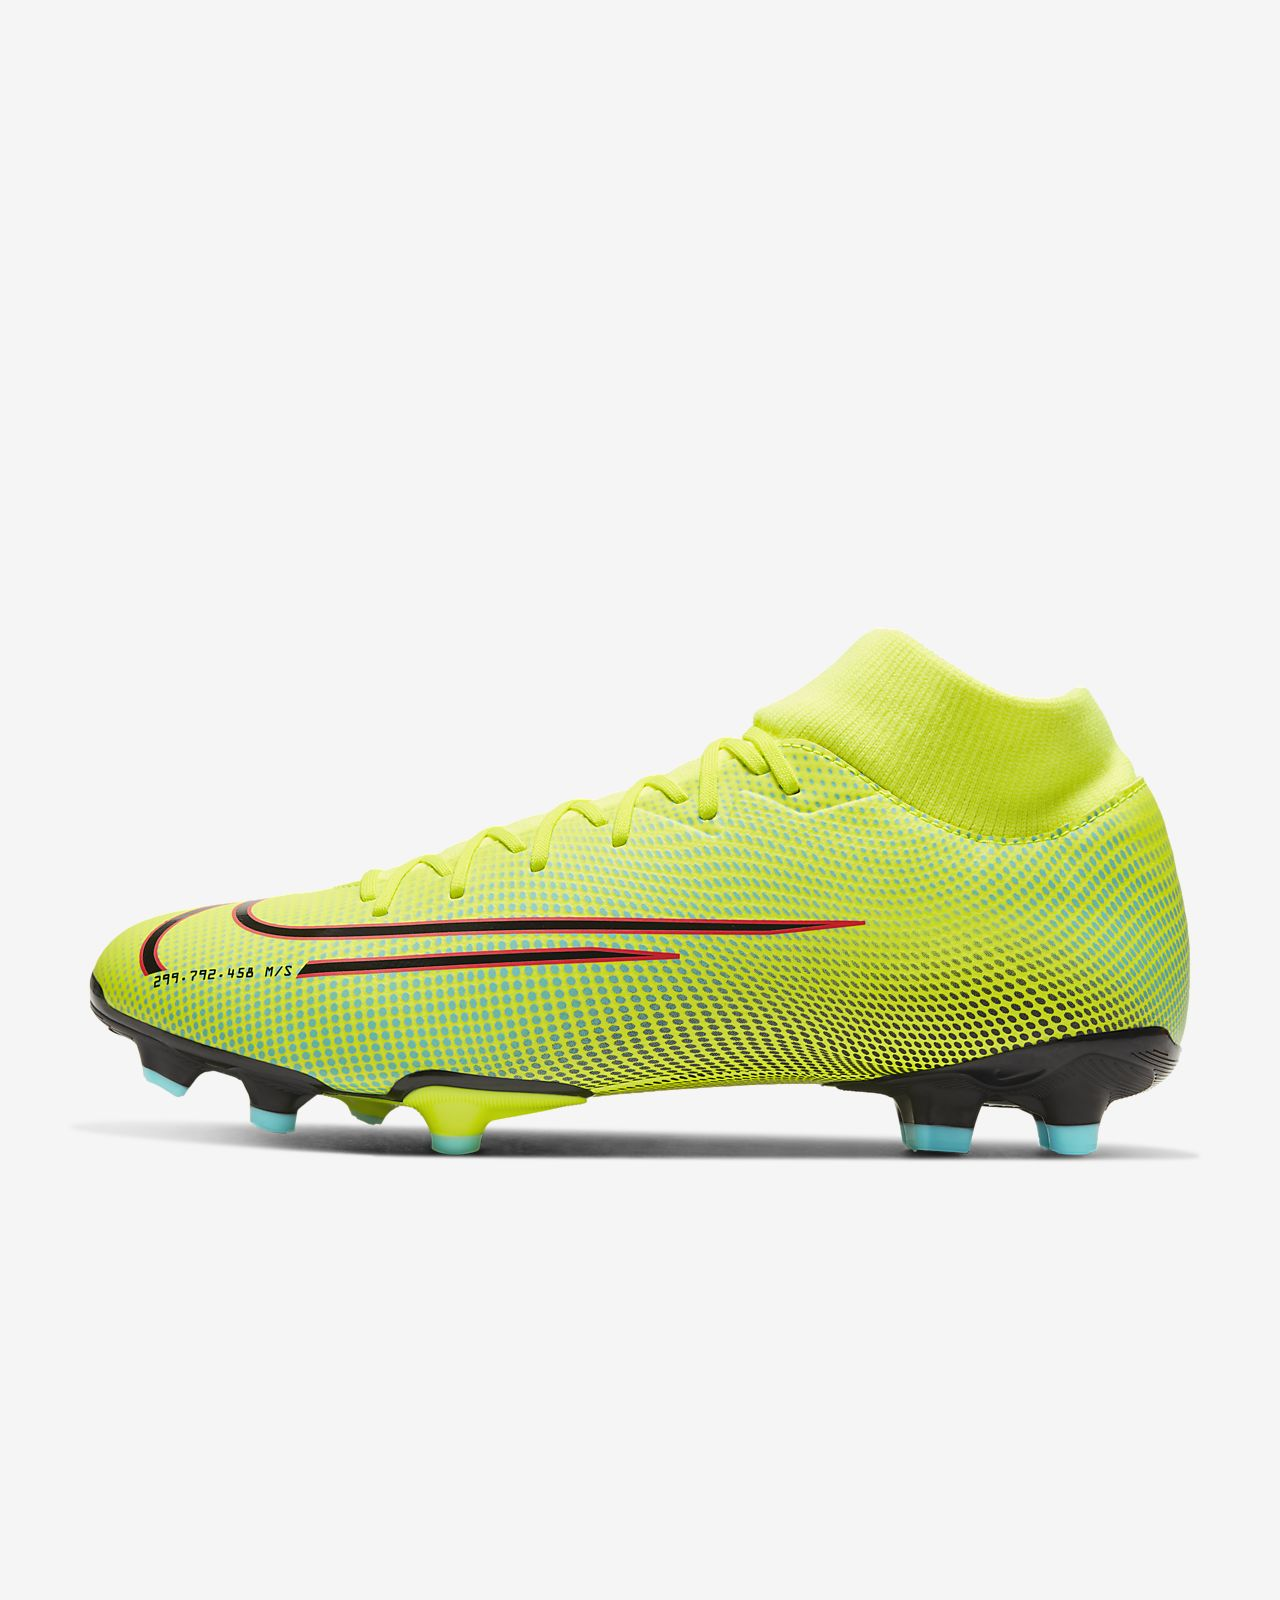 Nike Mercurial Superfly 7 Academy MDS MG Multi-Ground Soccer Cleat